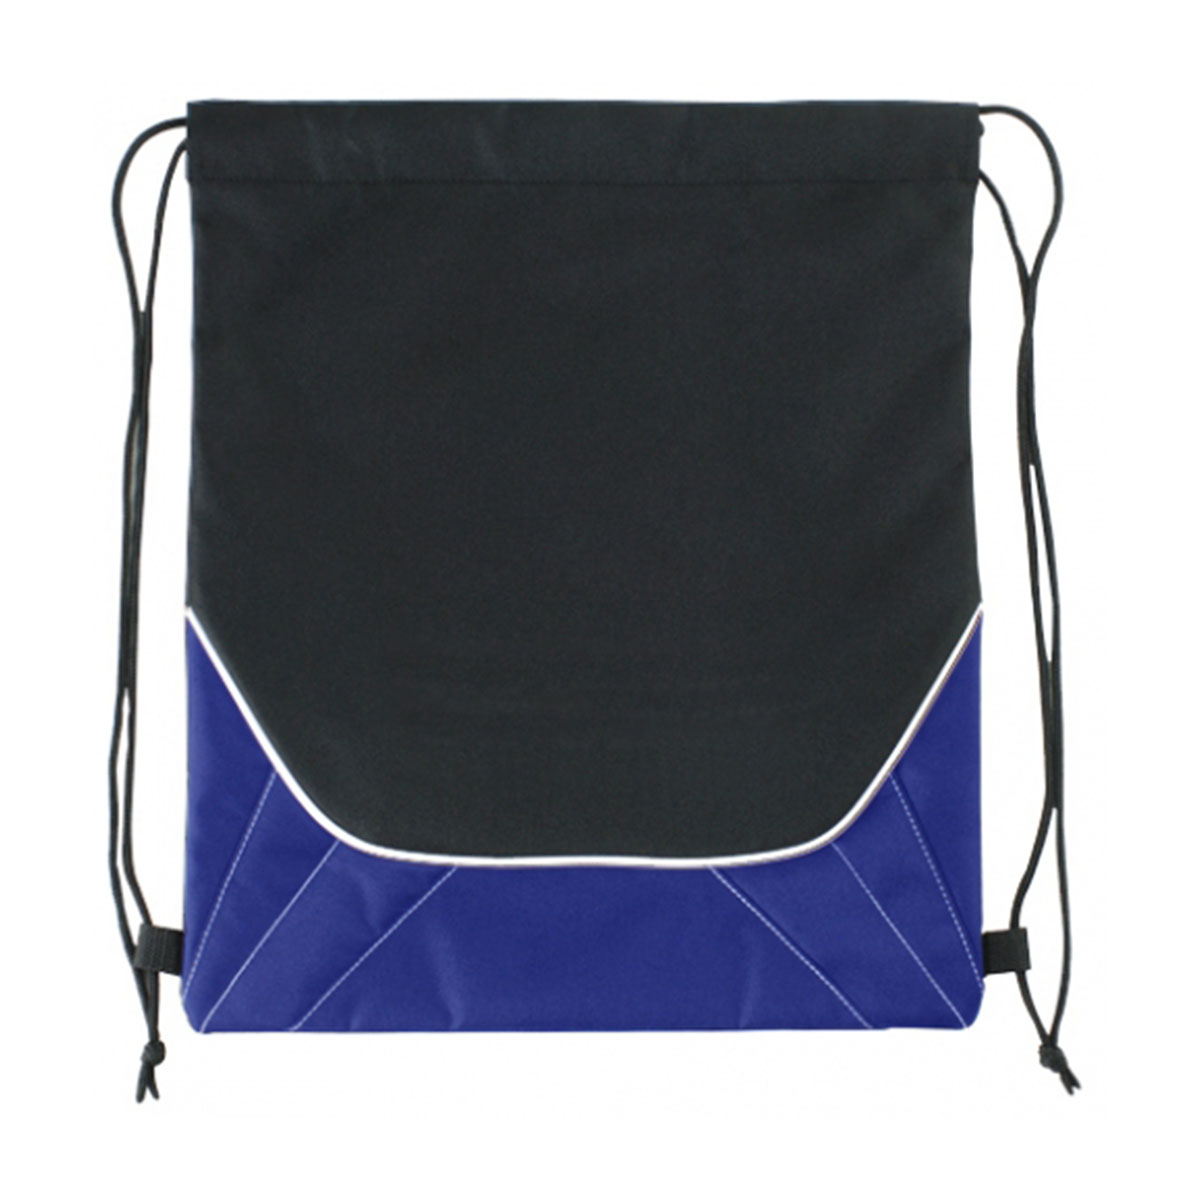 Tycoon Backsack-Black / Royal